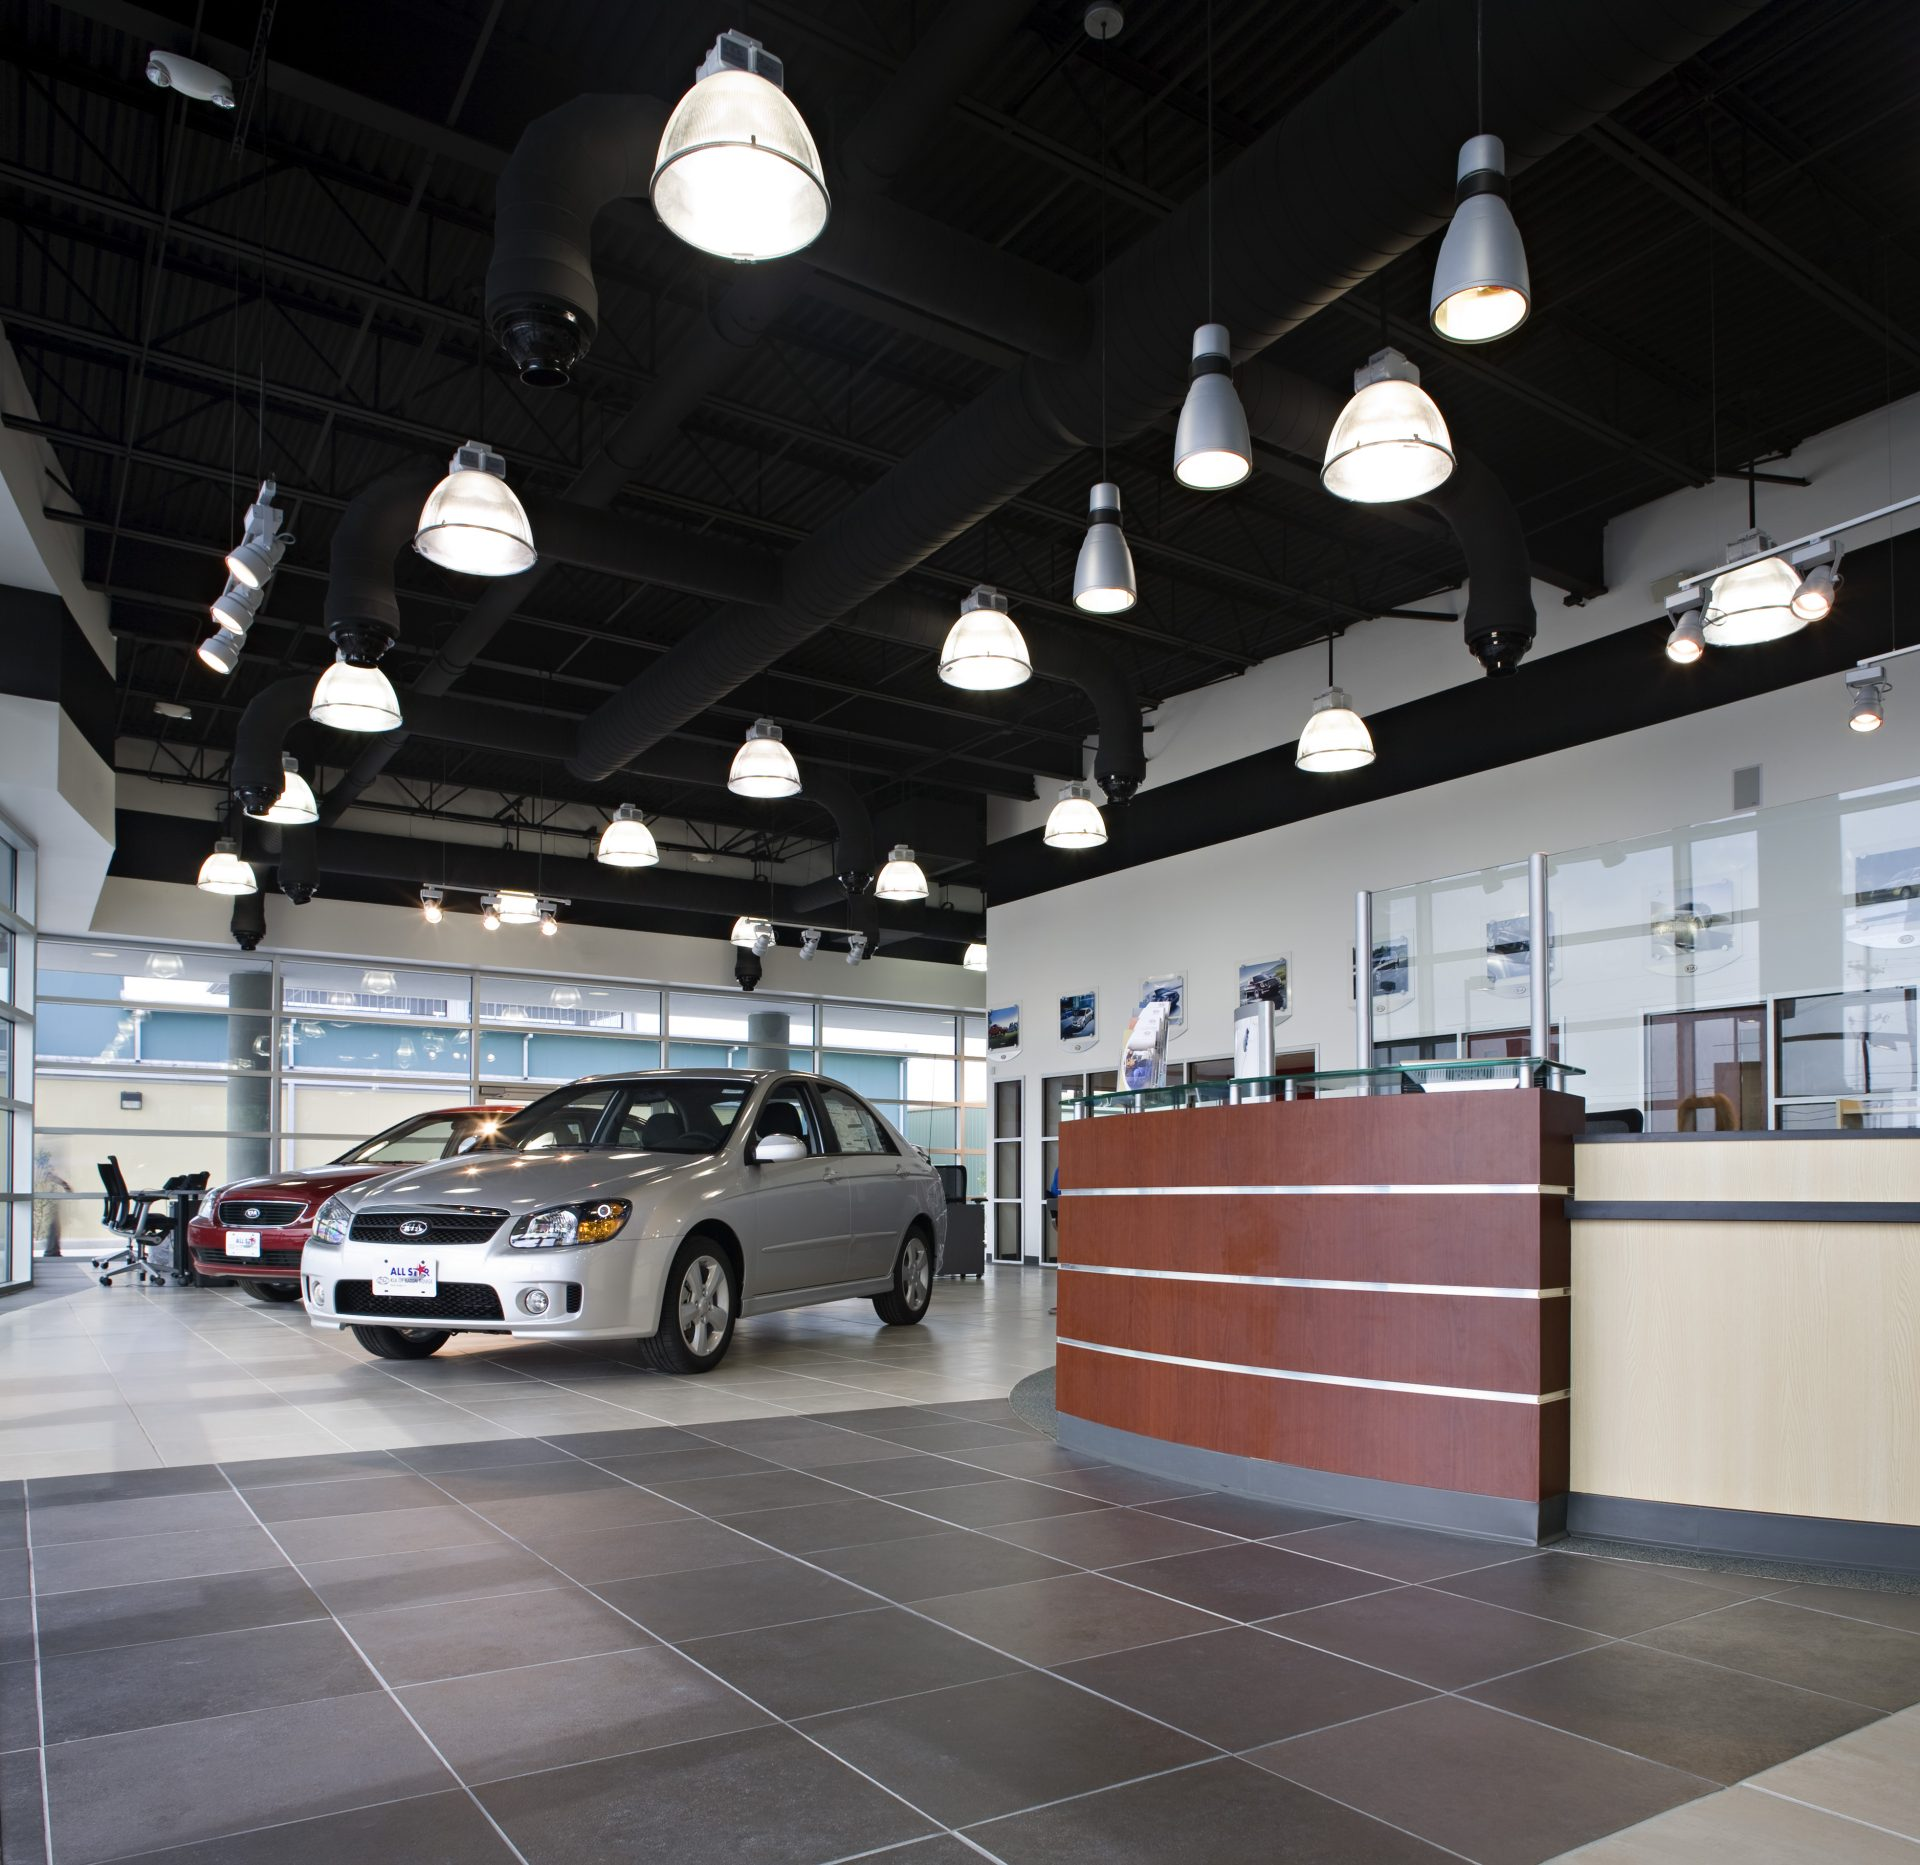 All Star Kia reception area with large, industrial-style lighting.